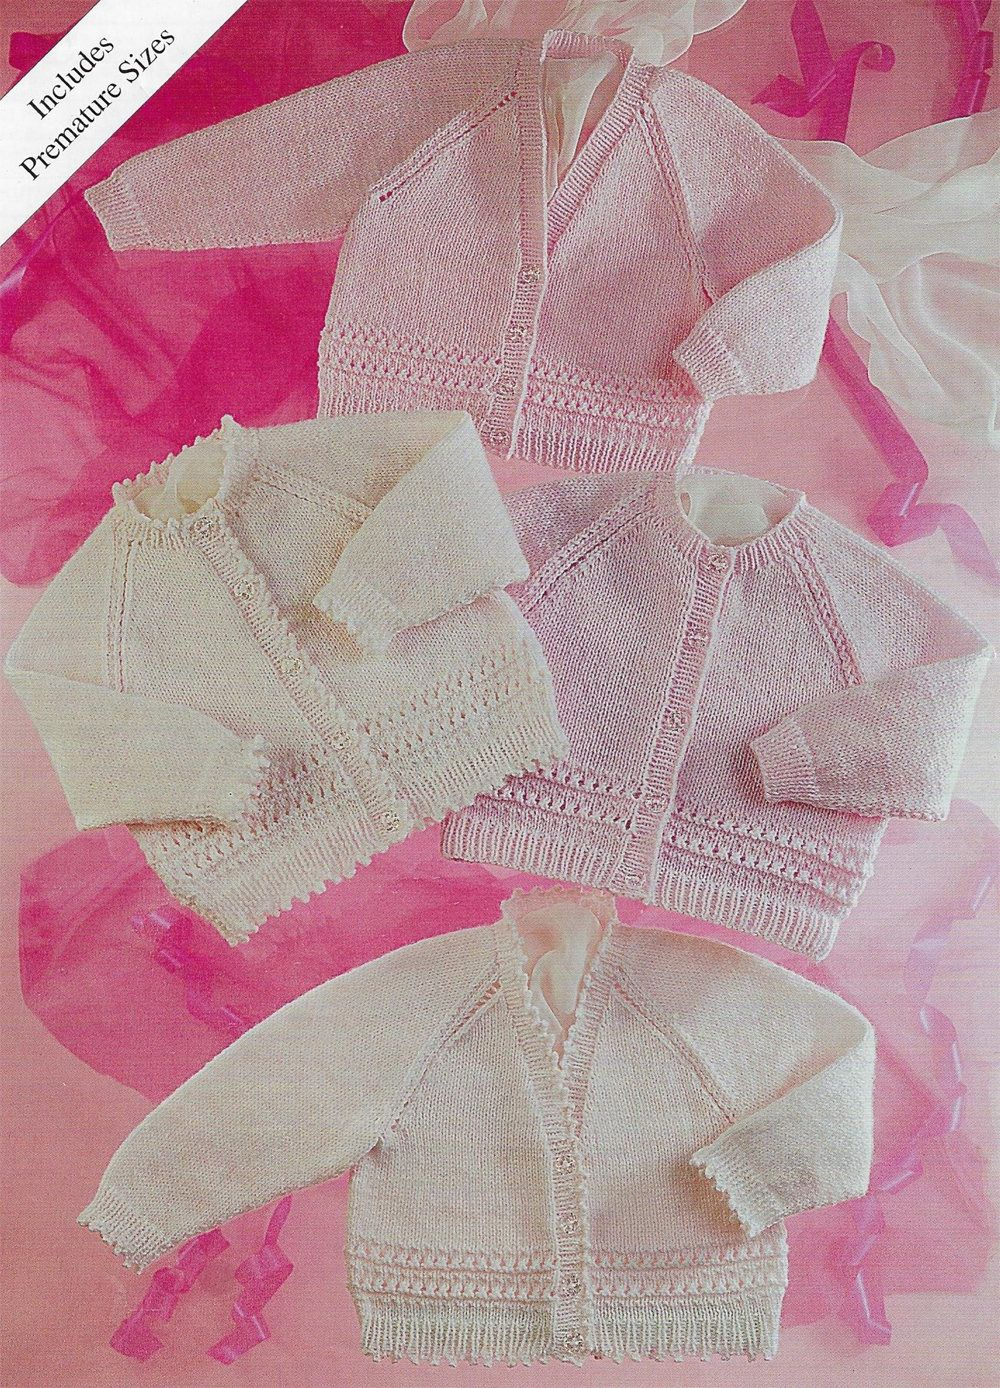 Baby doll clothing | baby born doll clothing.